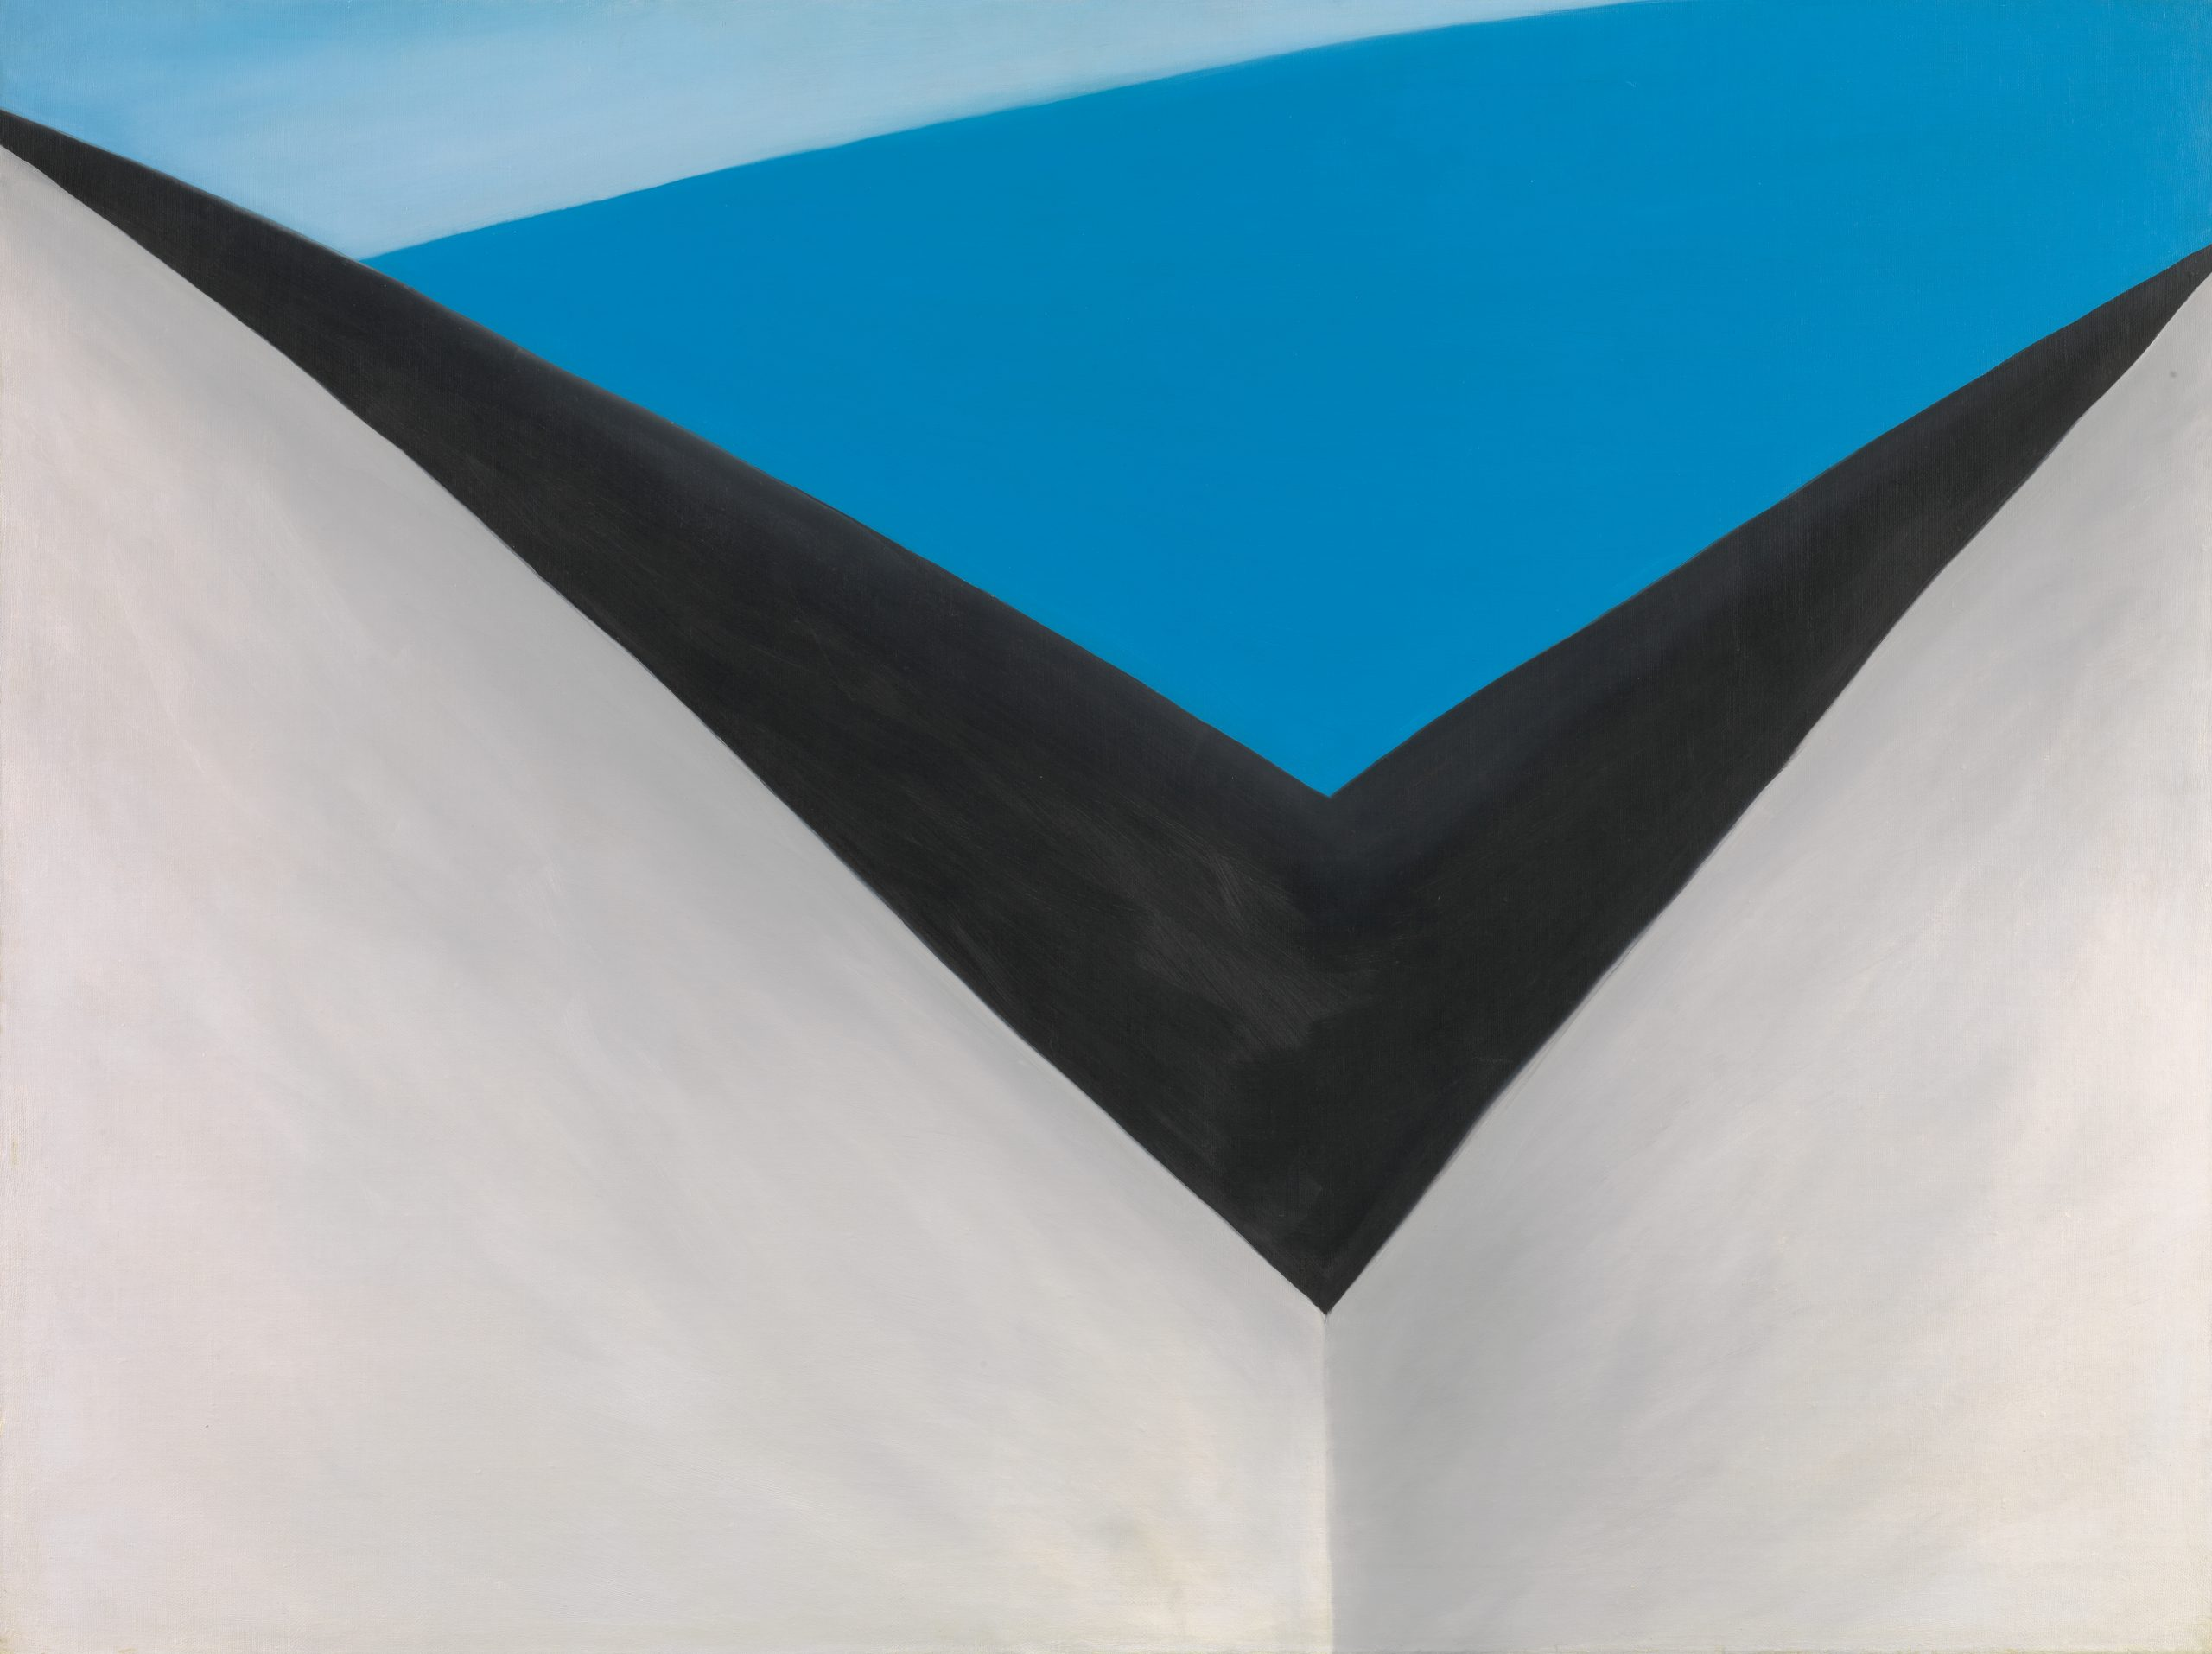 Painted grey and black v-shape structure with a blue sky overhead.